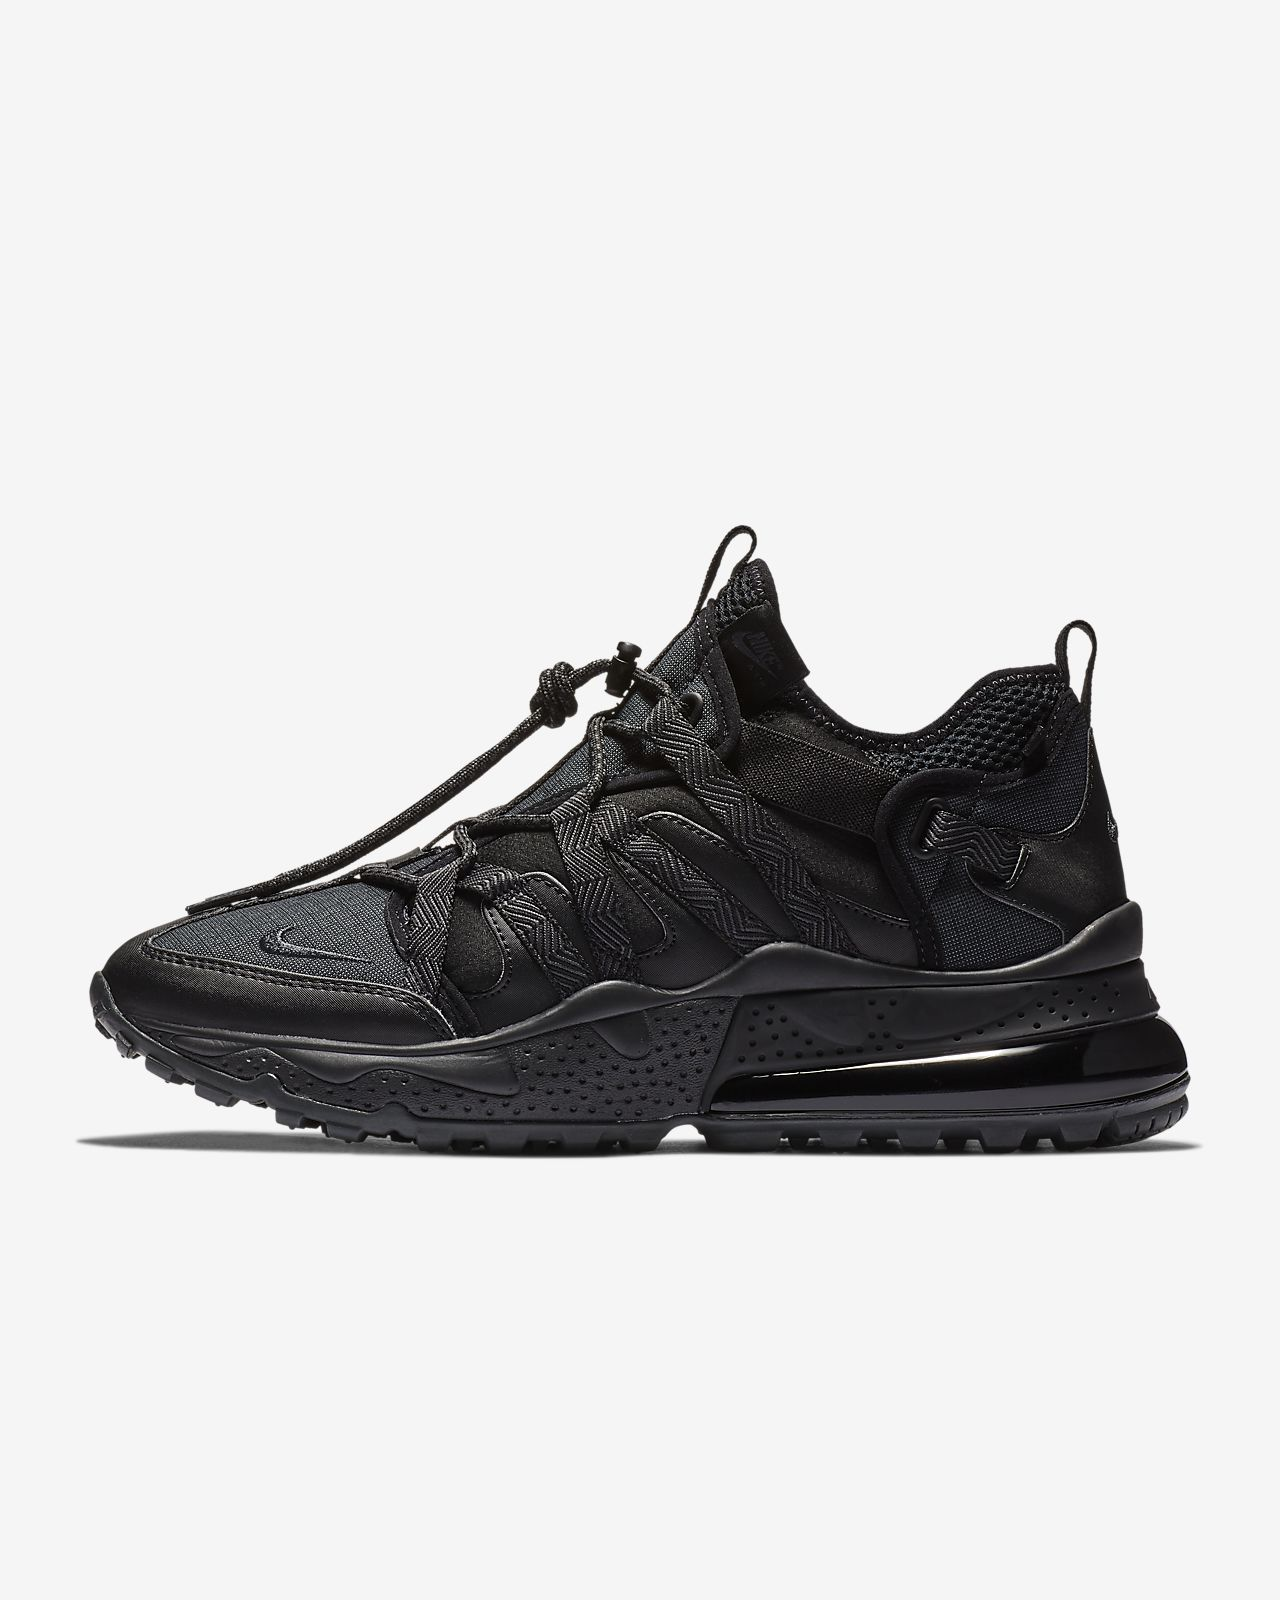 meet 82053 ca359 ... Nike Air Max 270 Bowfin Men s Shoe